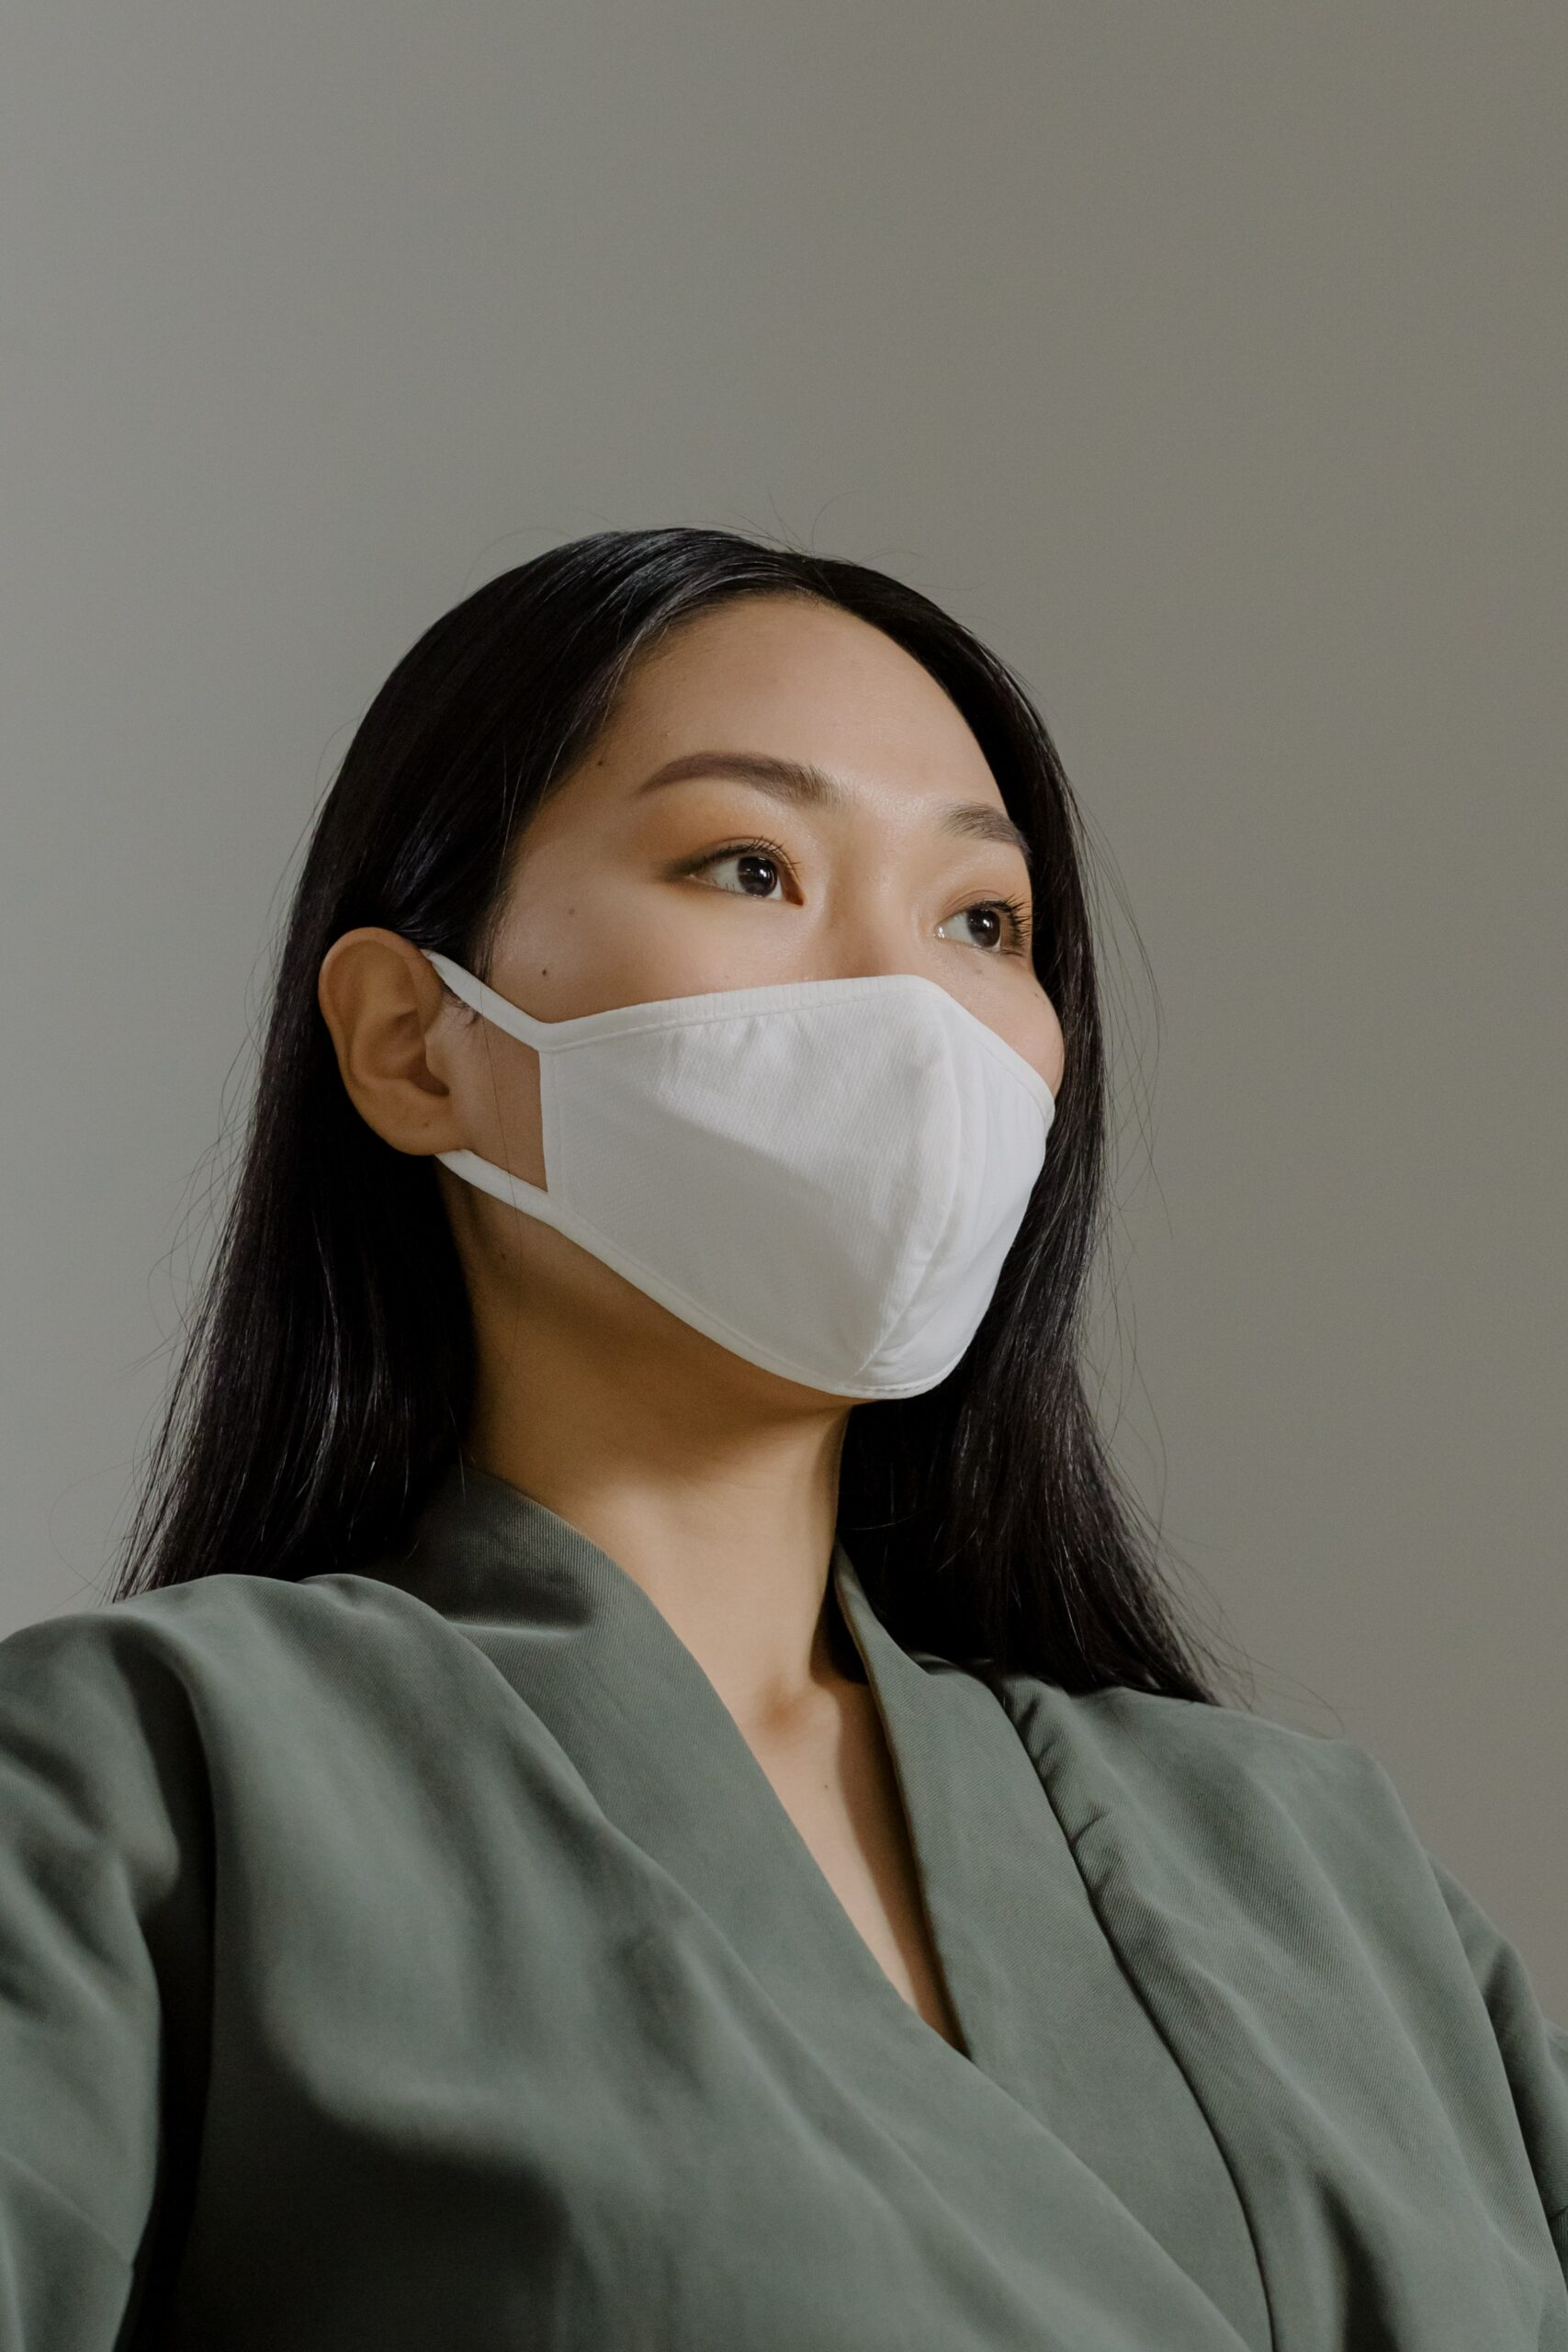 Woman in suit wearing a mask